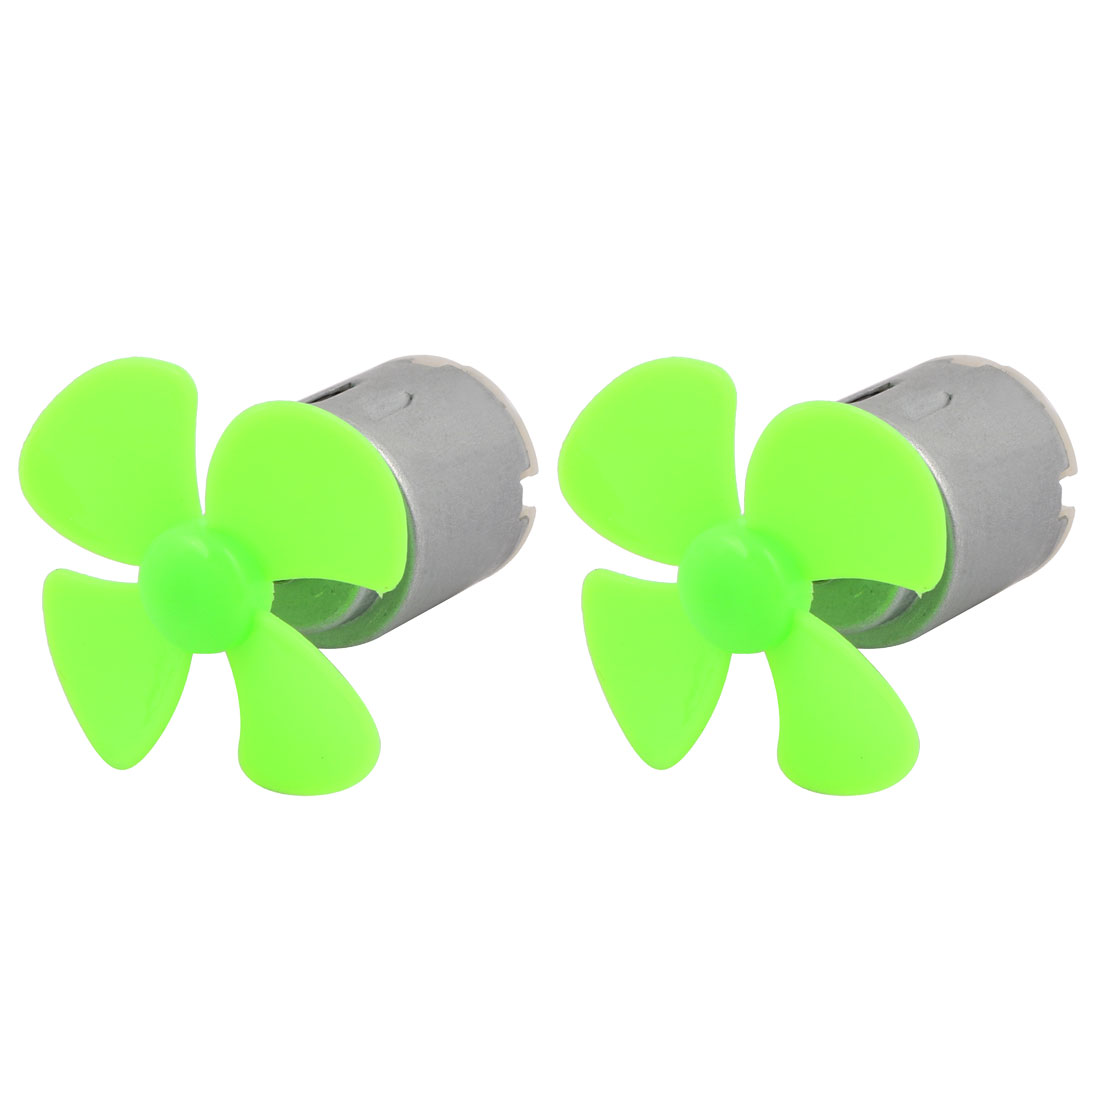 2pcs DC 3V 0.13A 9000RPM Strong Force Motor 4 Vanes 40mm Green Propeller for RC Aircraft